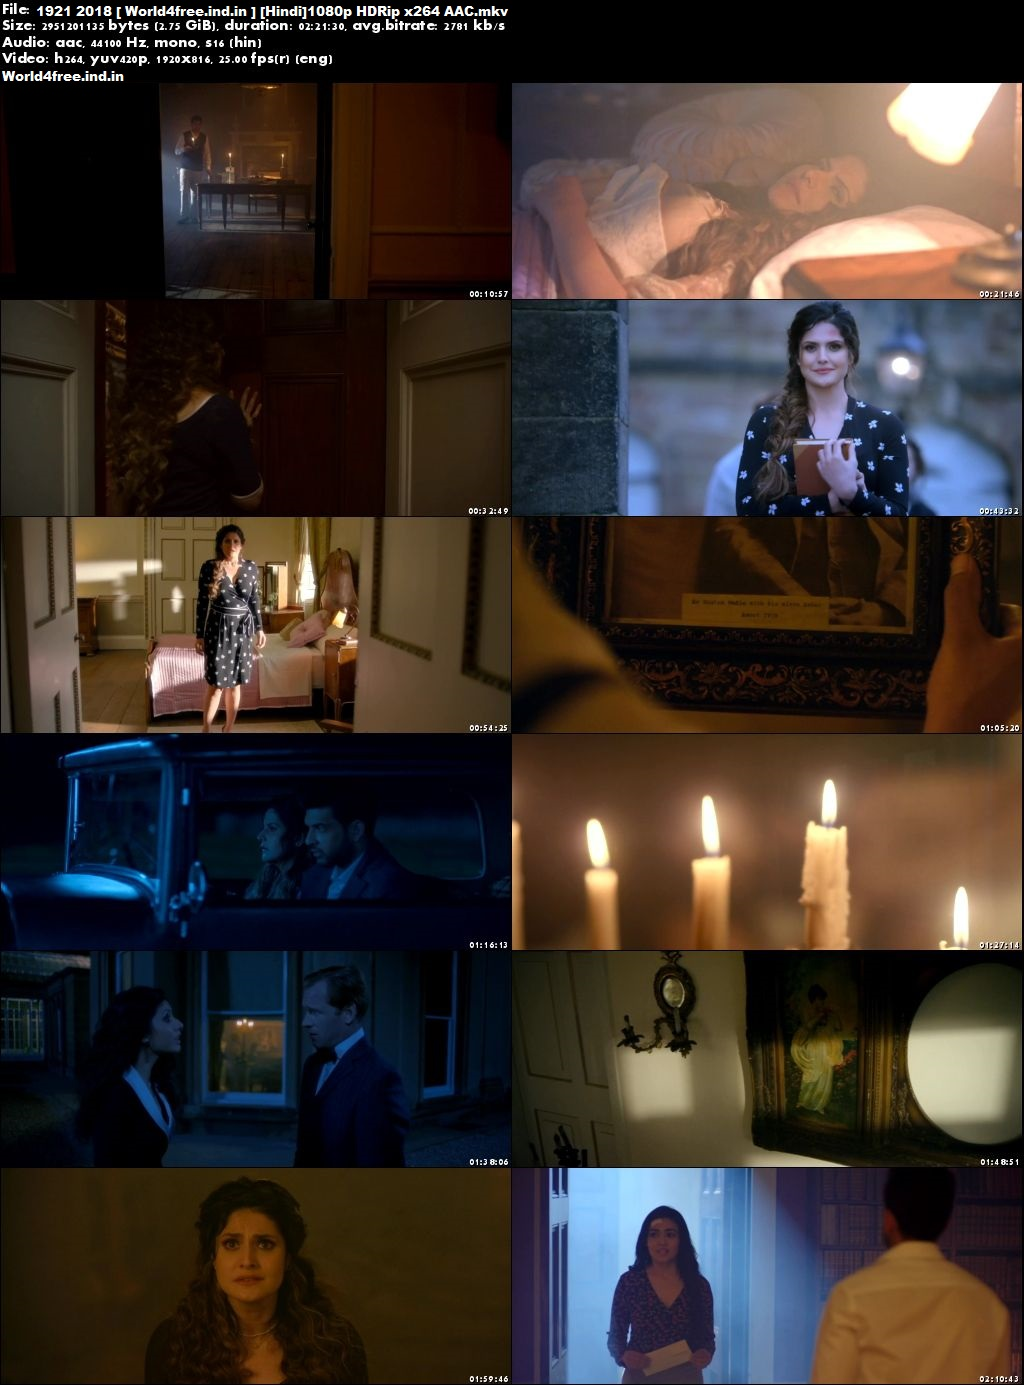 1921 2018 world4free.ind.in Full HDRip 1080p Hindi Movie Download